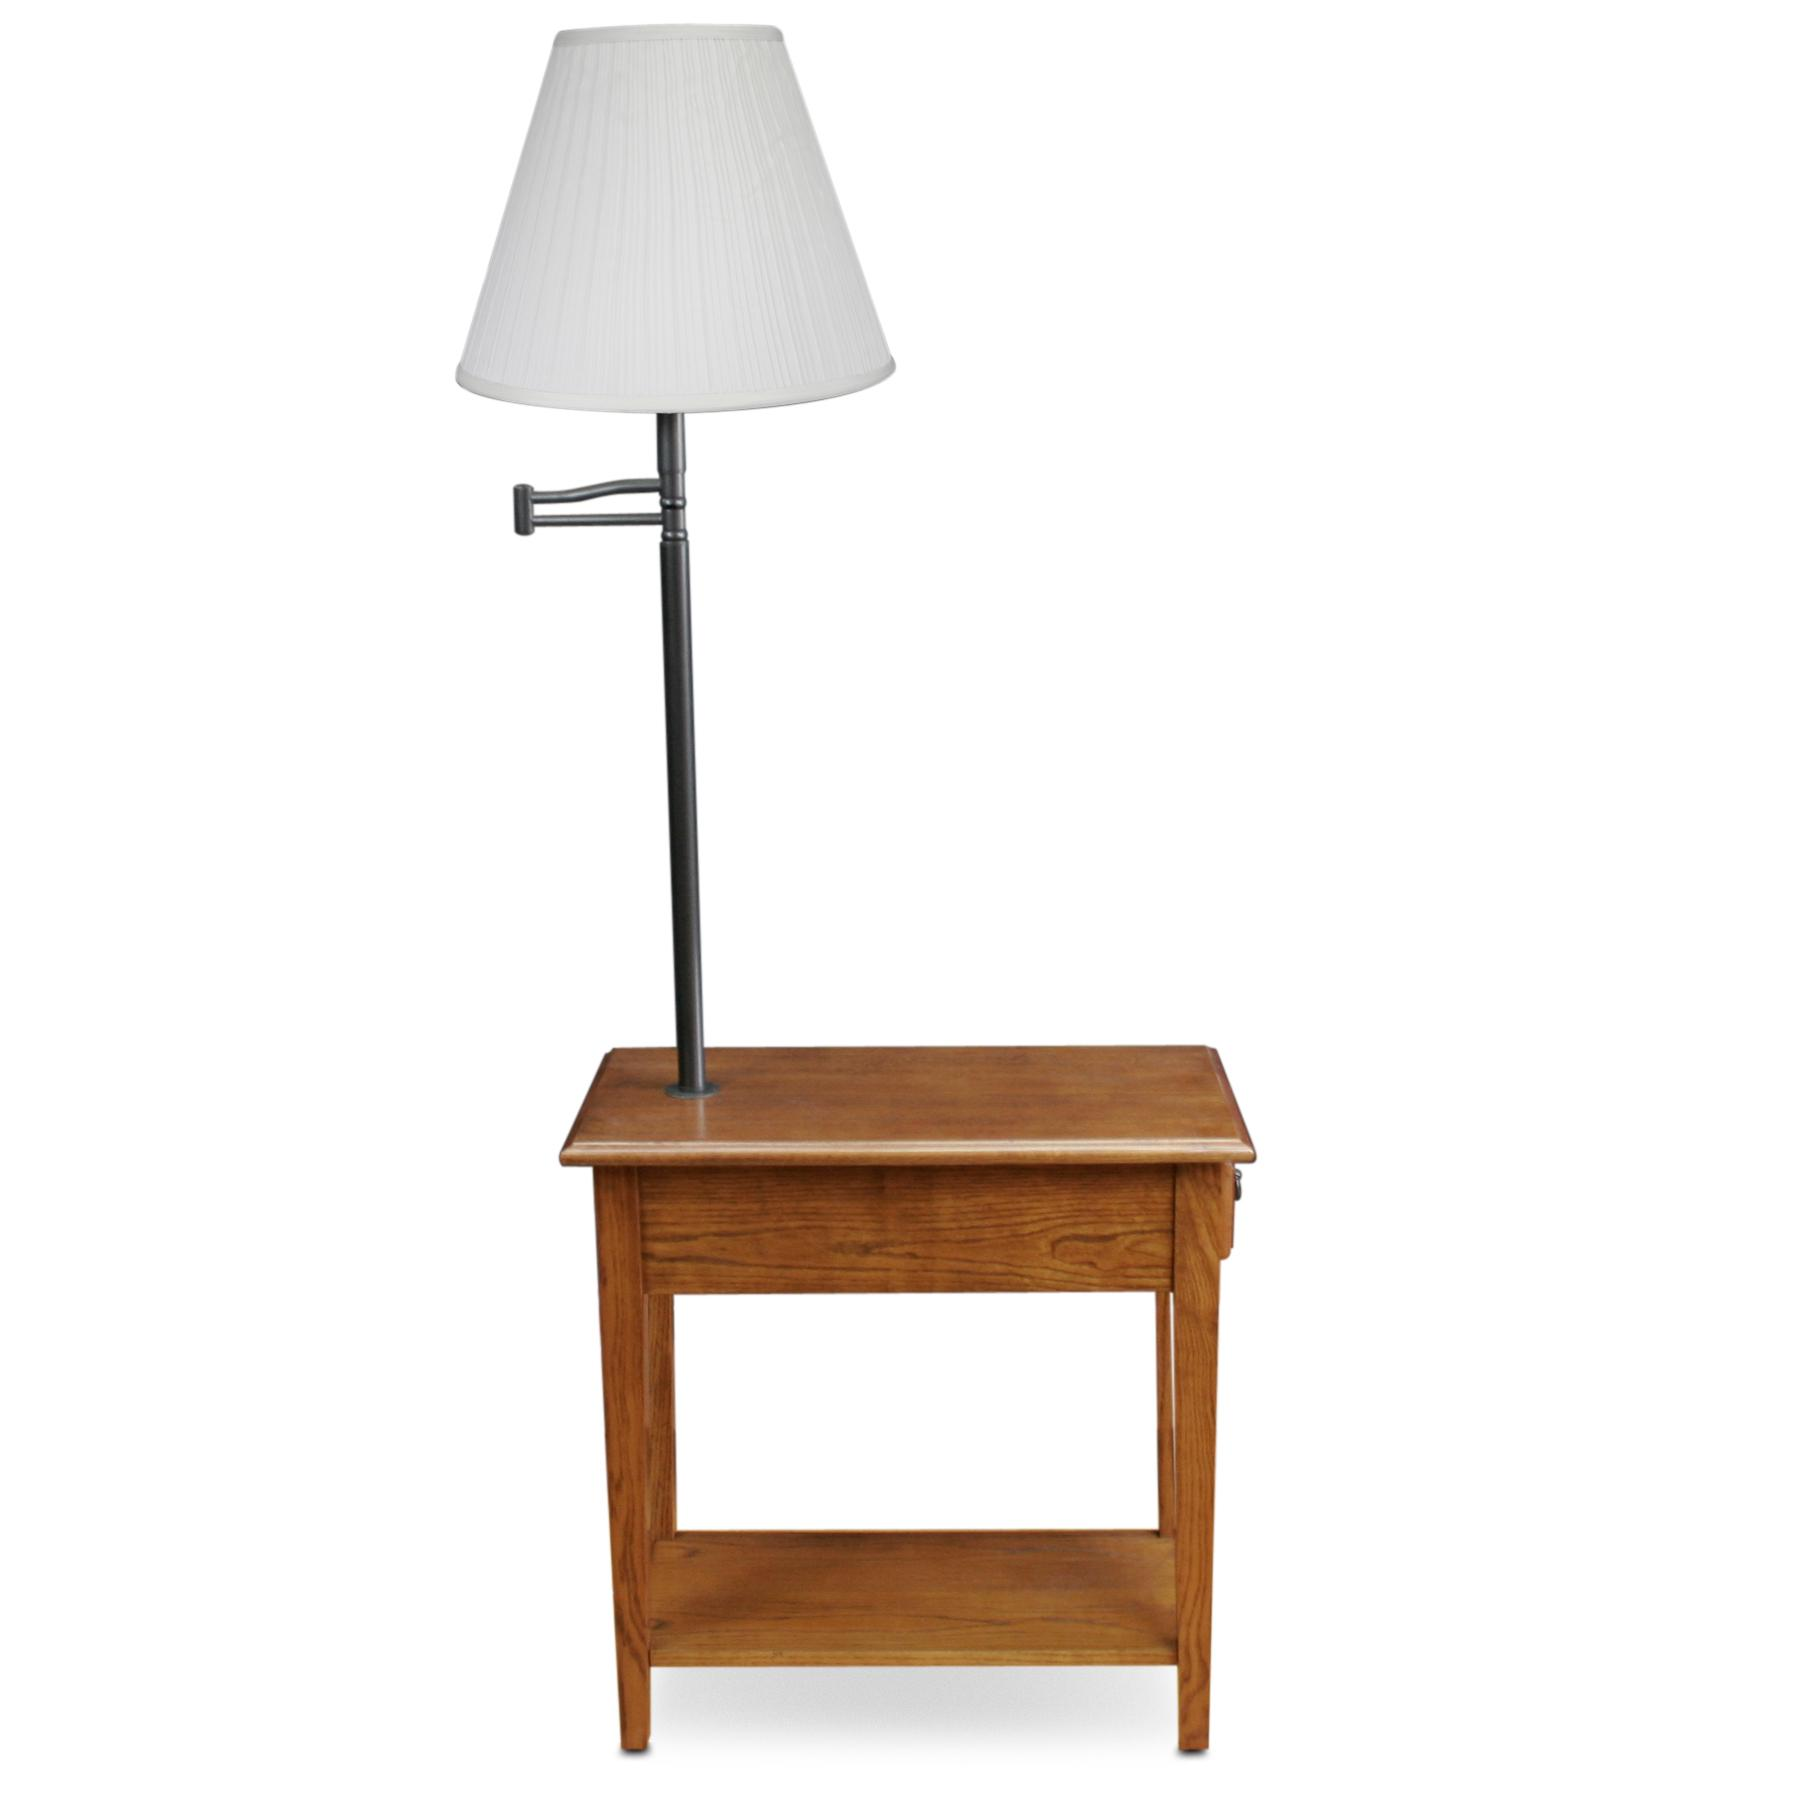 best end table lamp combo house design vintage lamps metal outdoor chairs lift top coffee chest rustic dining decor ethan allen global inc dog cage made wood dark chocolate sofa